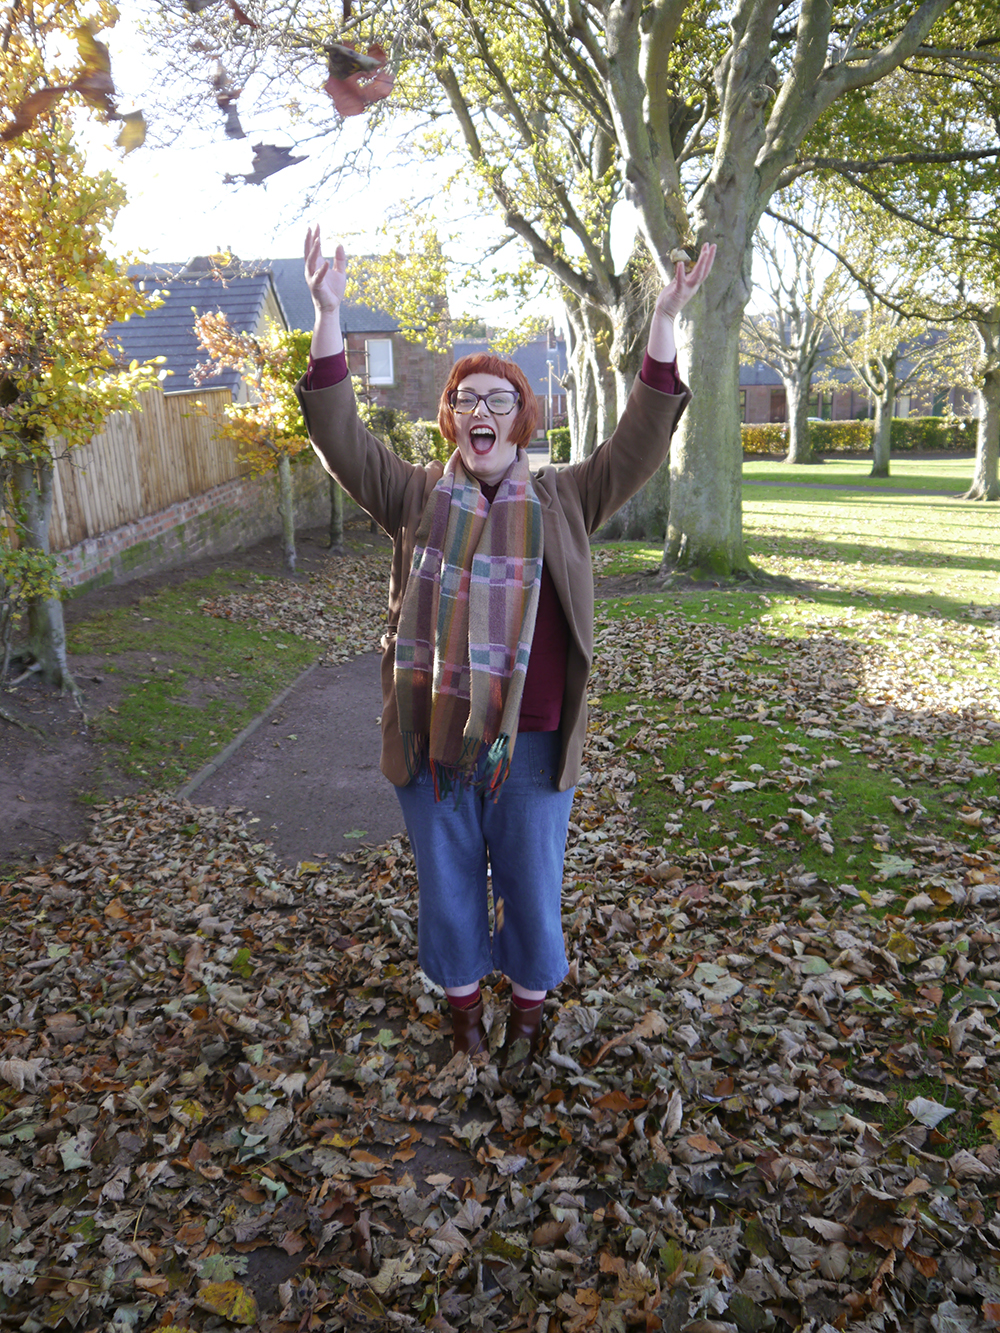 Autumn outfit inspired by fallen leaves